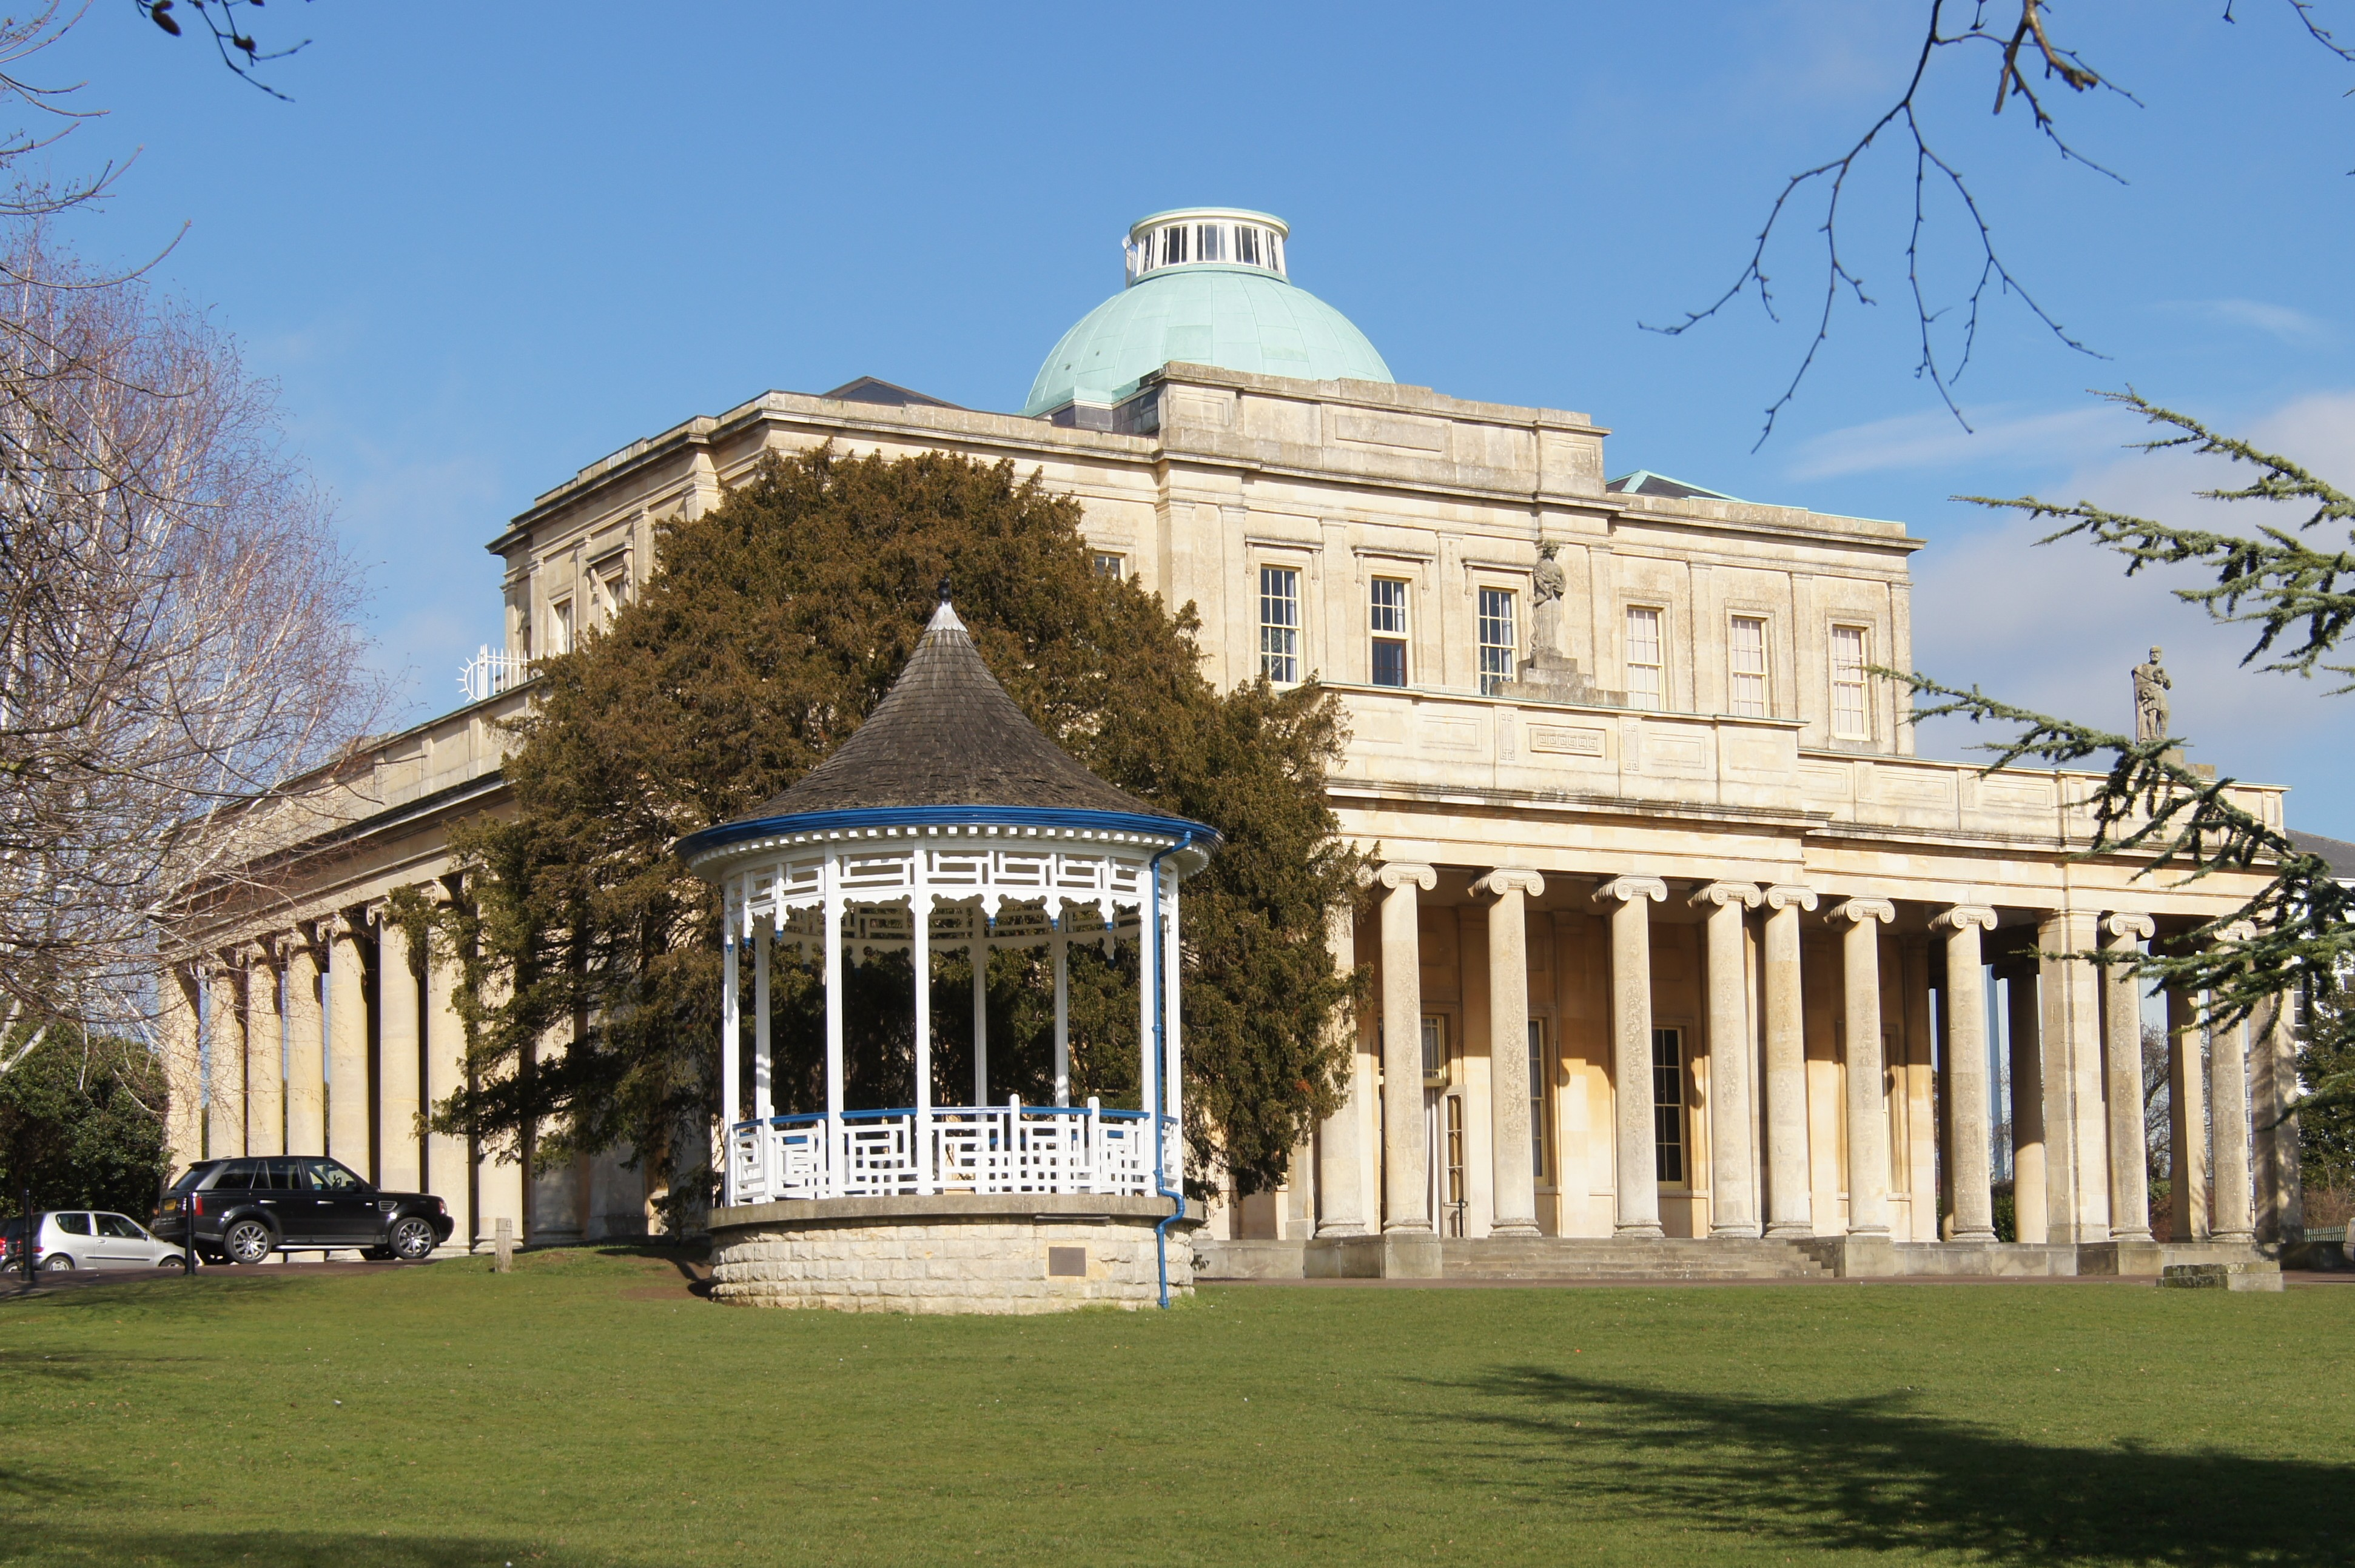 A beautiful photo of the Pittville Pump Room taken from the side. Maven Connex Creative Blogger Morning